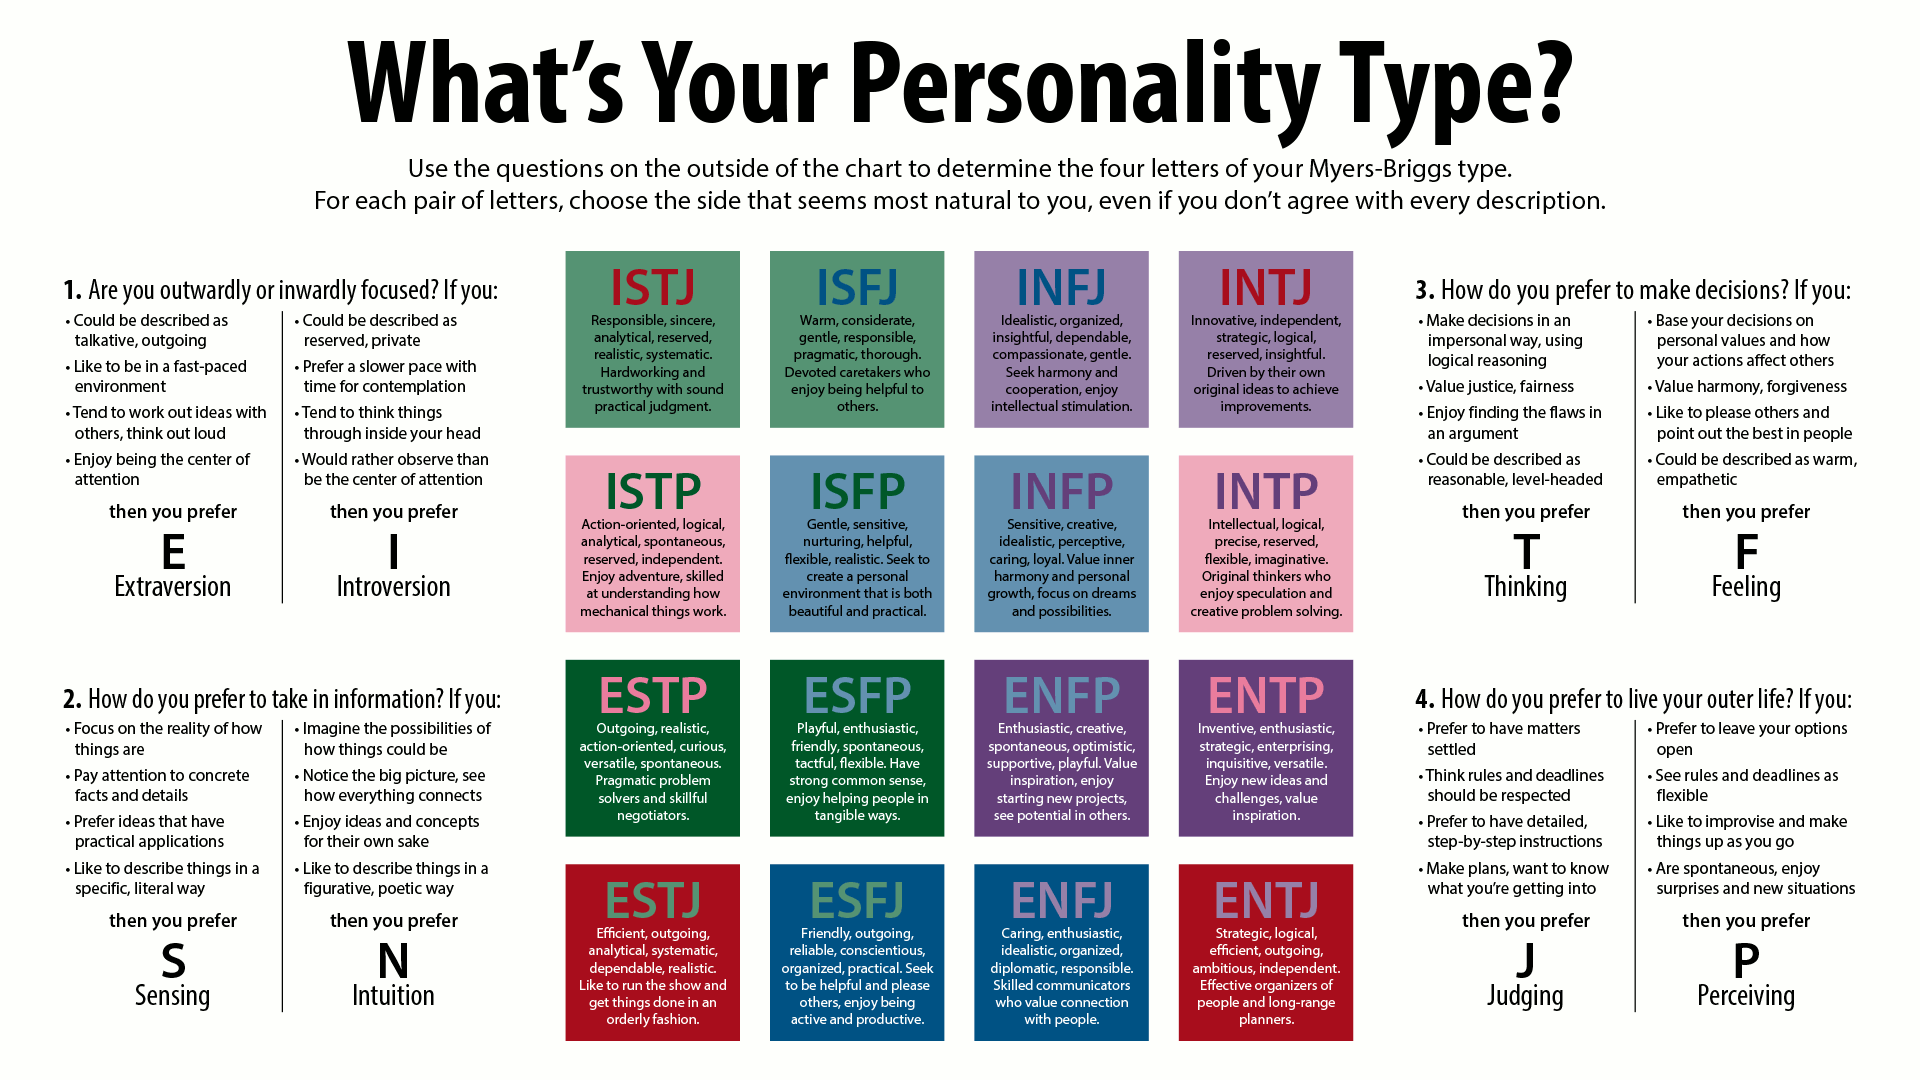 myersbriggs type indicator wikipedia